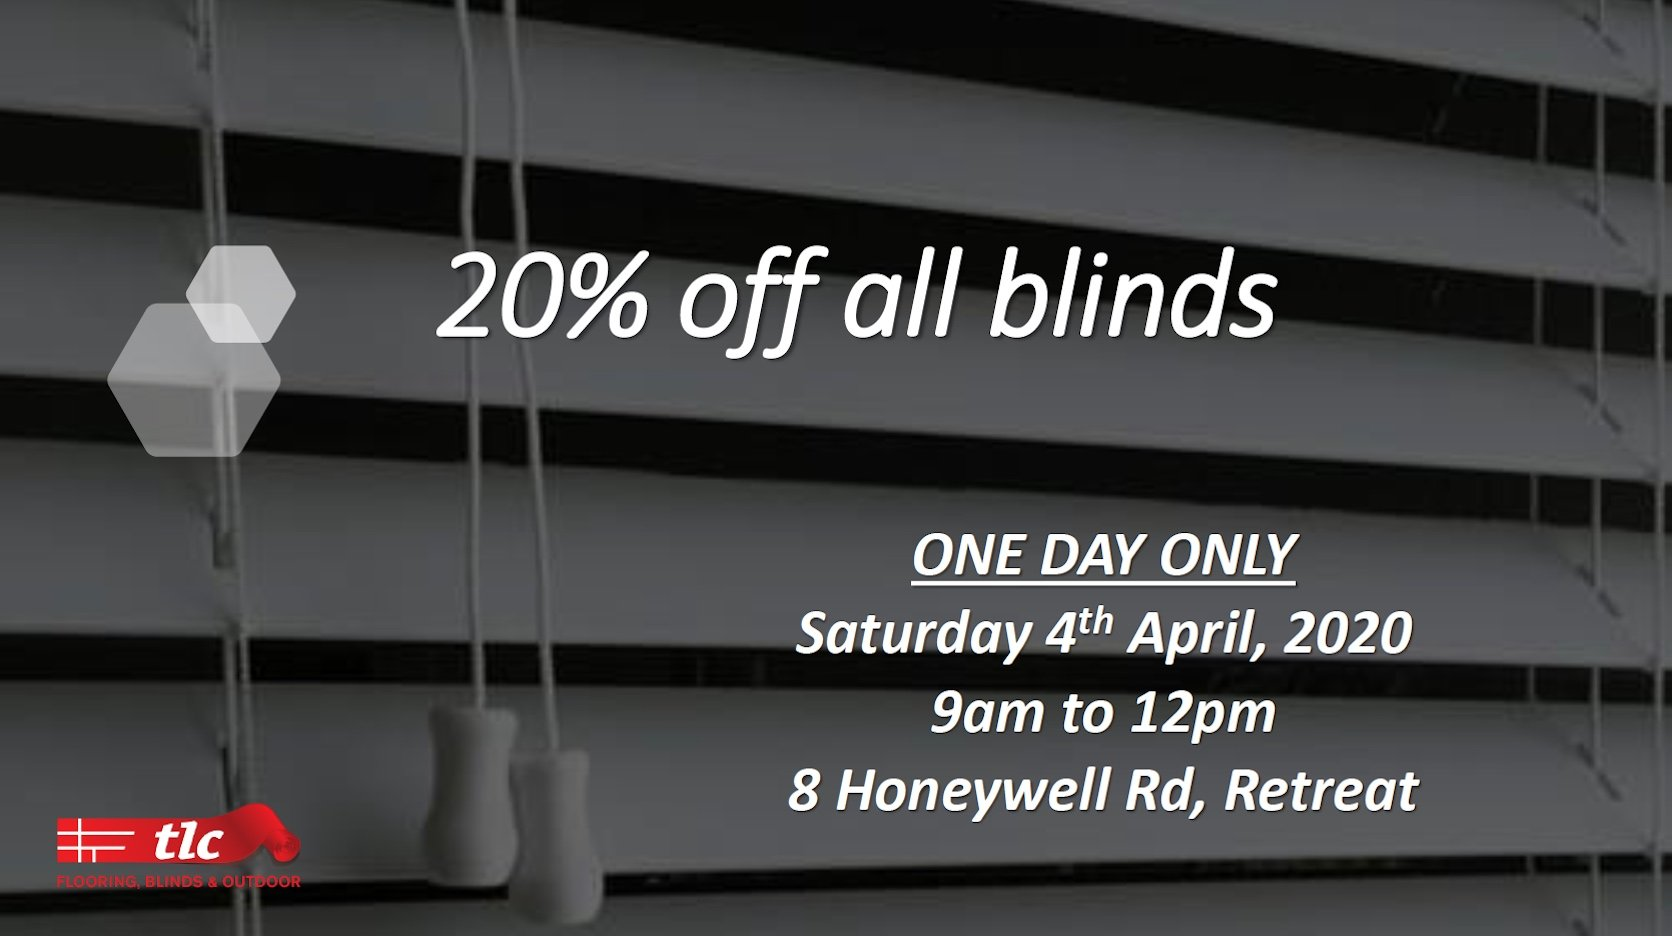 tlc flooring one day sale flash sale blinds